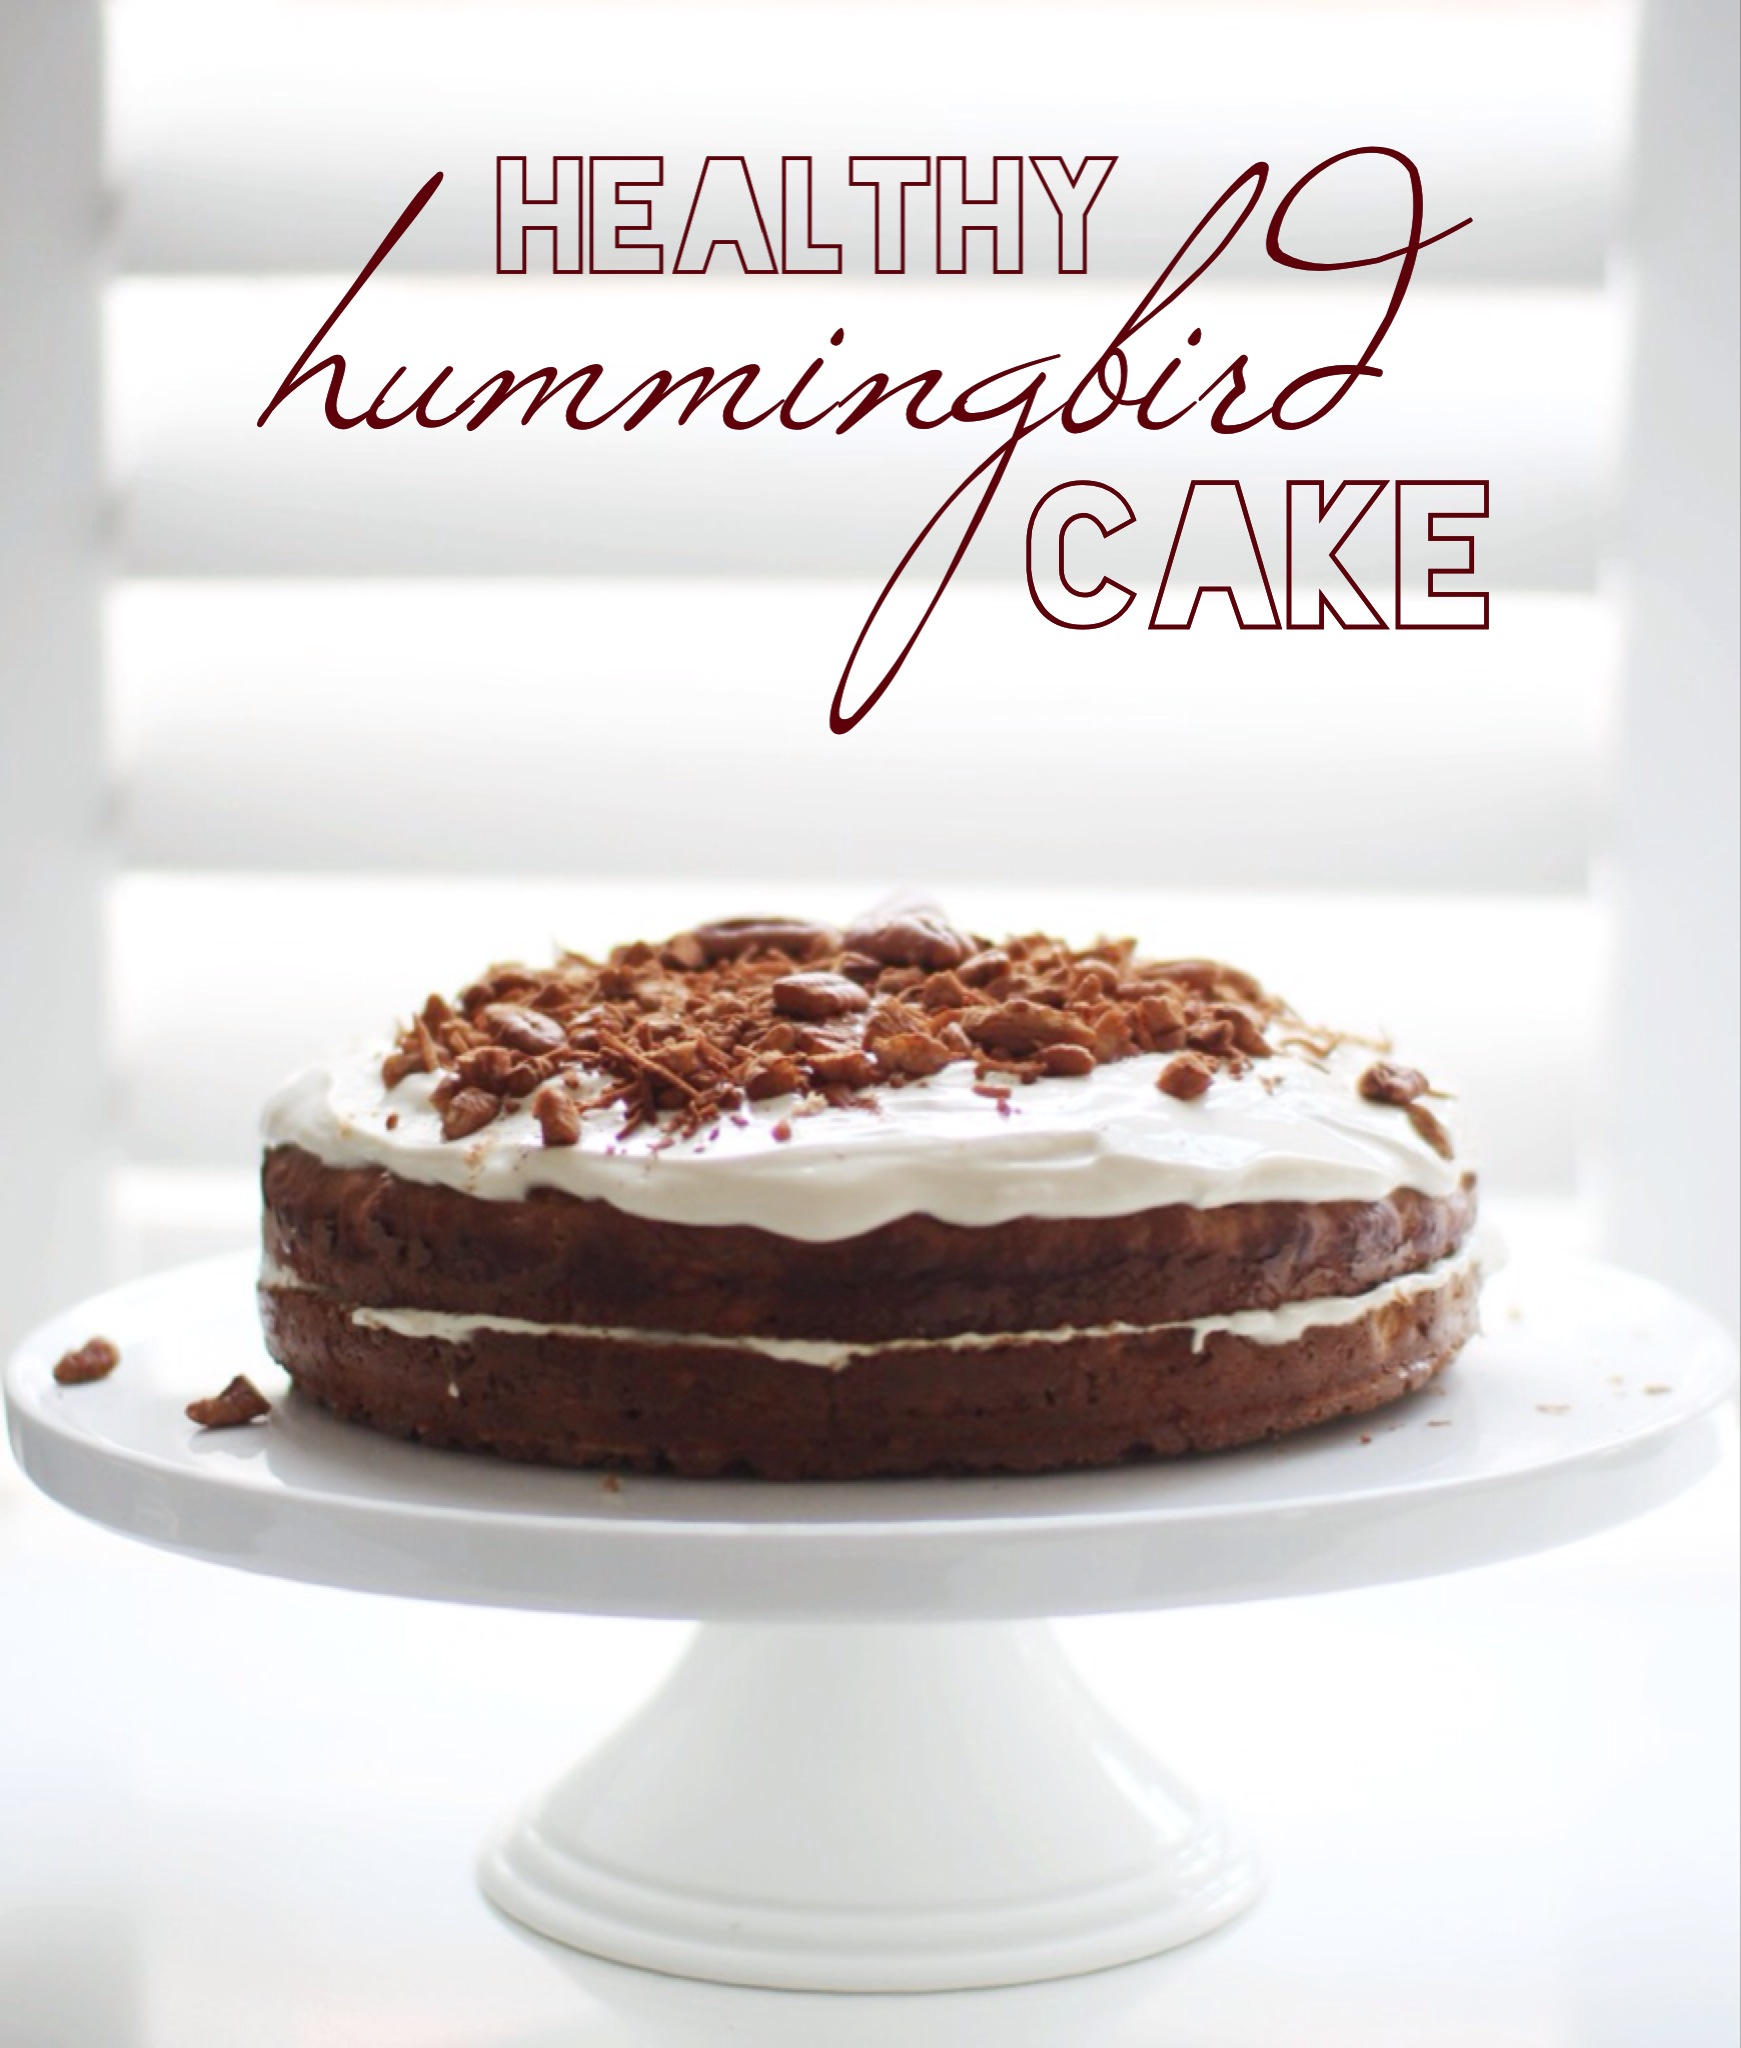 Healthy Hummingbird Cake - Not Your Typical Dietitian